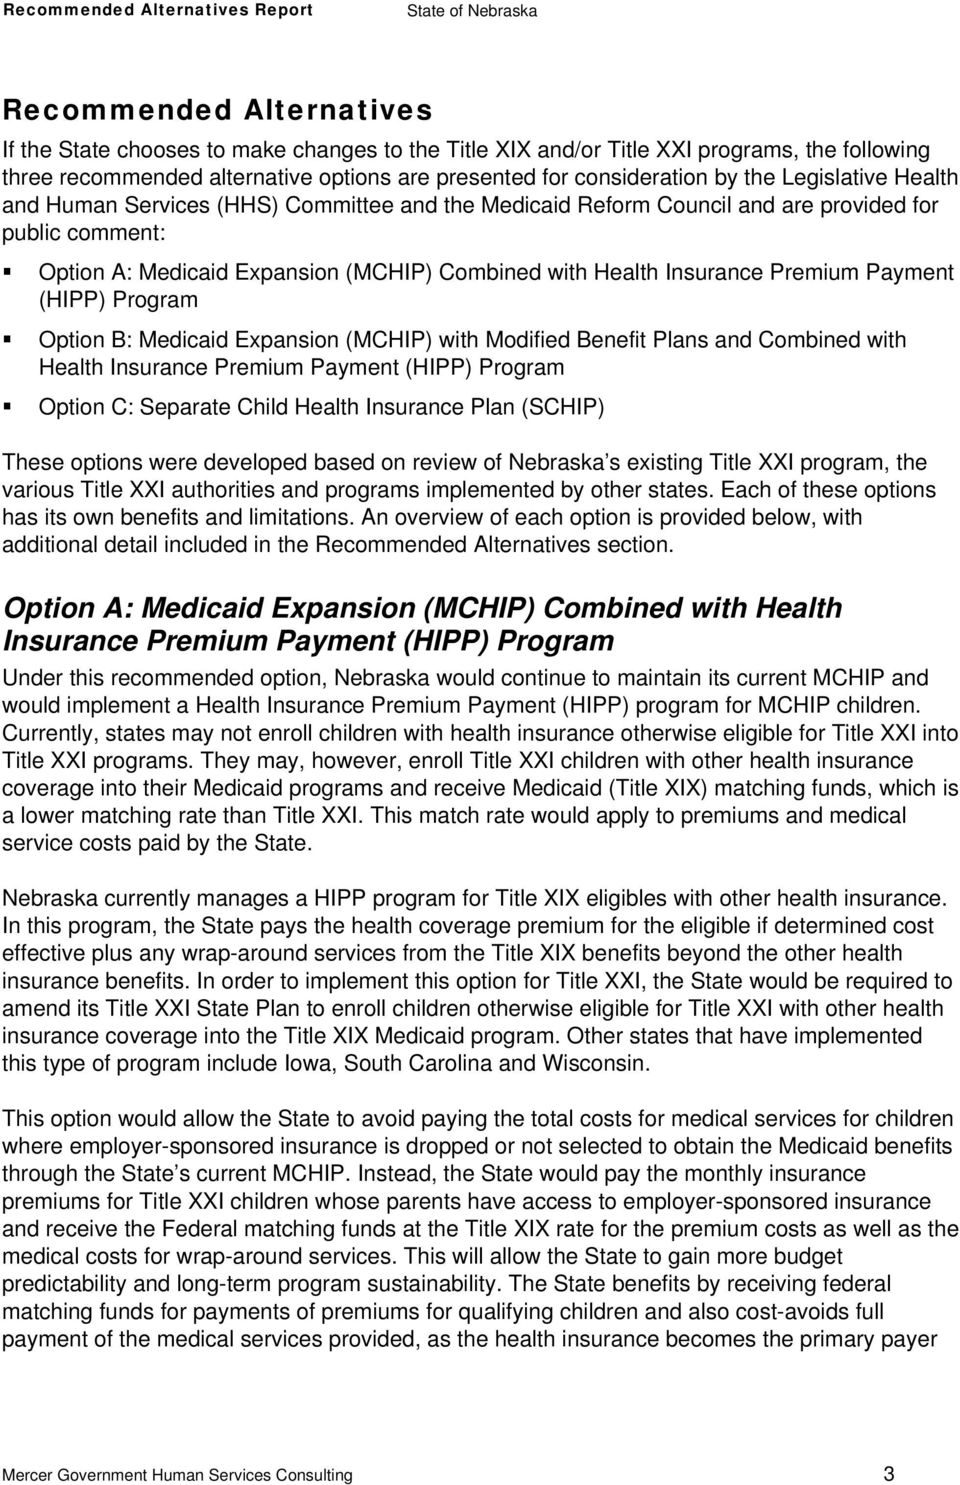 Payment (HIPP) Program Option B: Medicaid Expansion (MCHIP) with Modified Benefit Plans and Combined with Health Insurance Premium Payment (HIPP) Program Option C: Separate Child Health Insurance